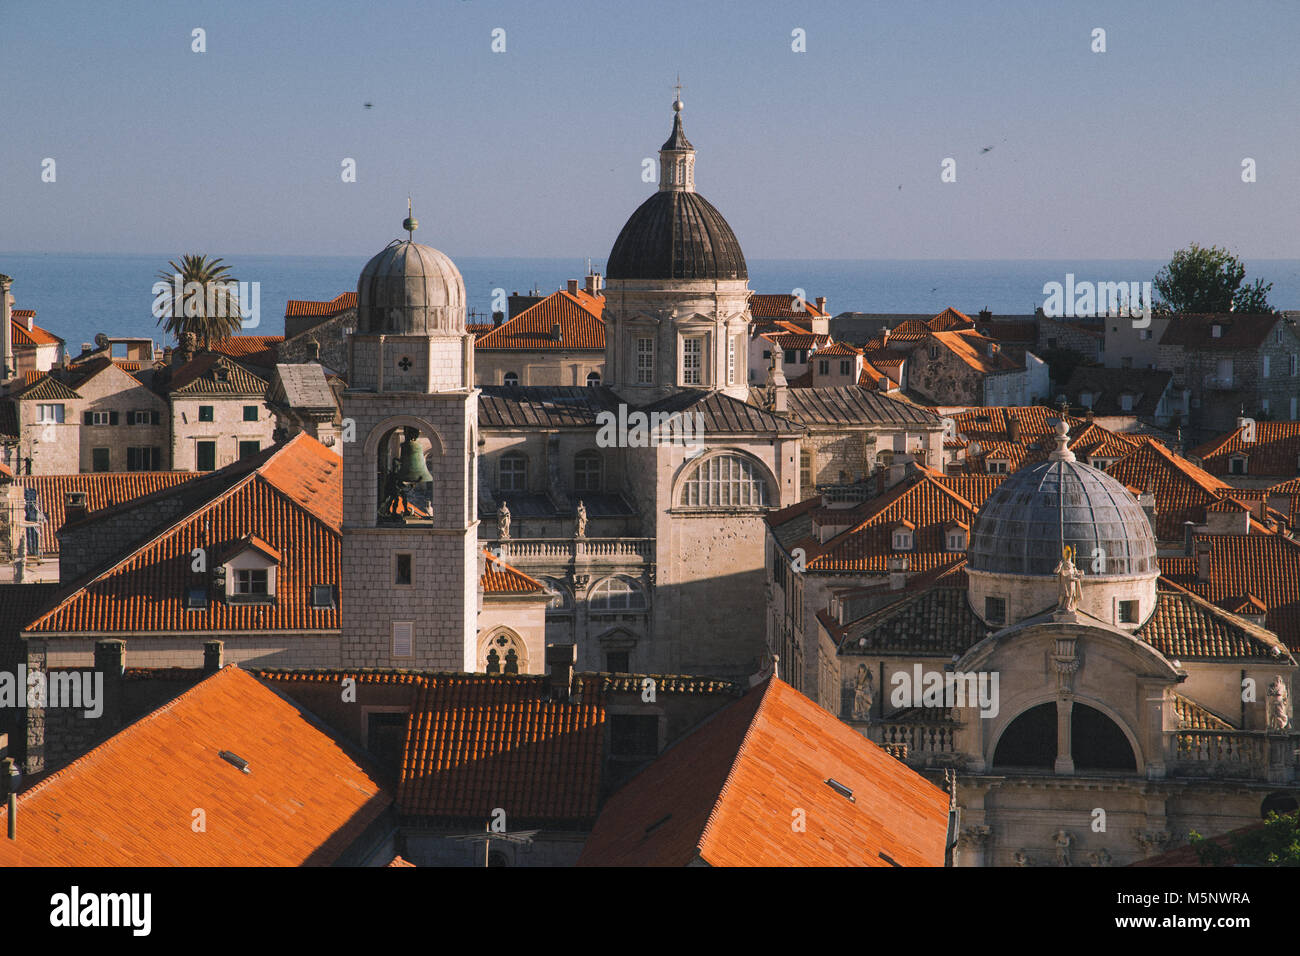 Classic panoramic view of the historic town of Dubrovnik, one of the most famous tourist destinations in the Mediterranean Stock Photo